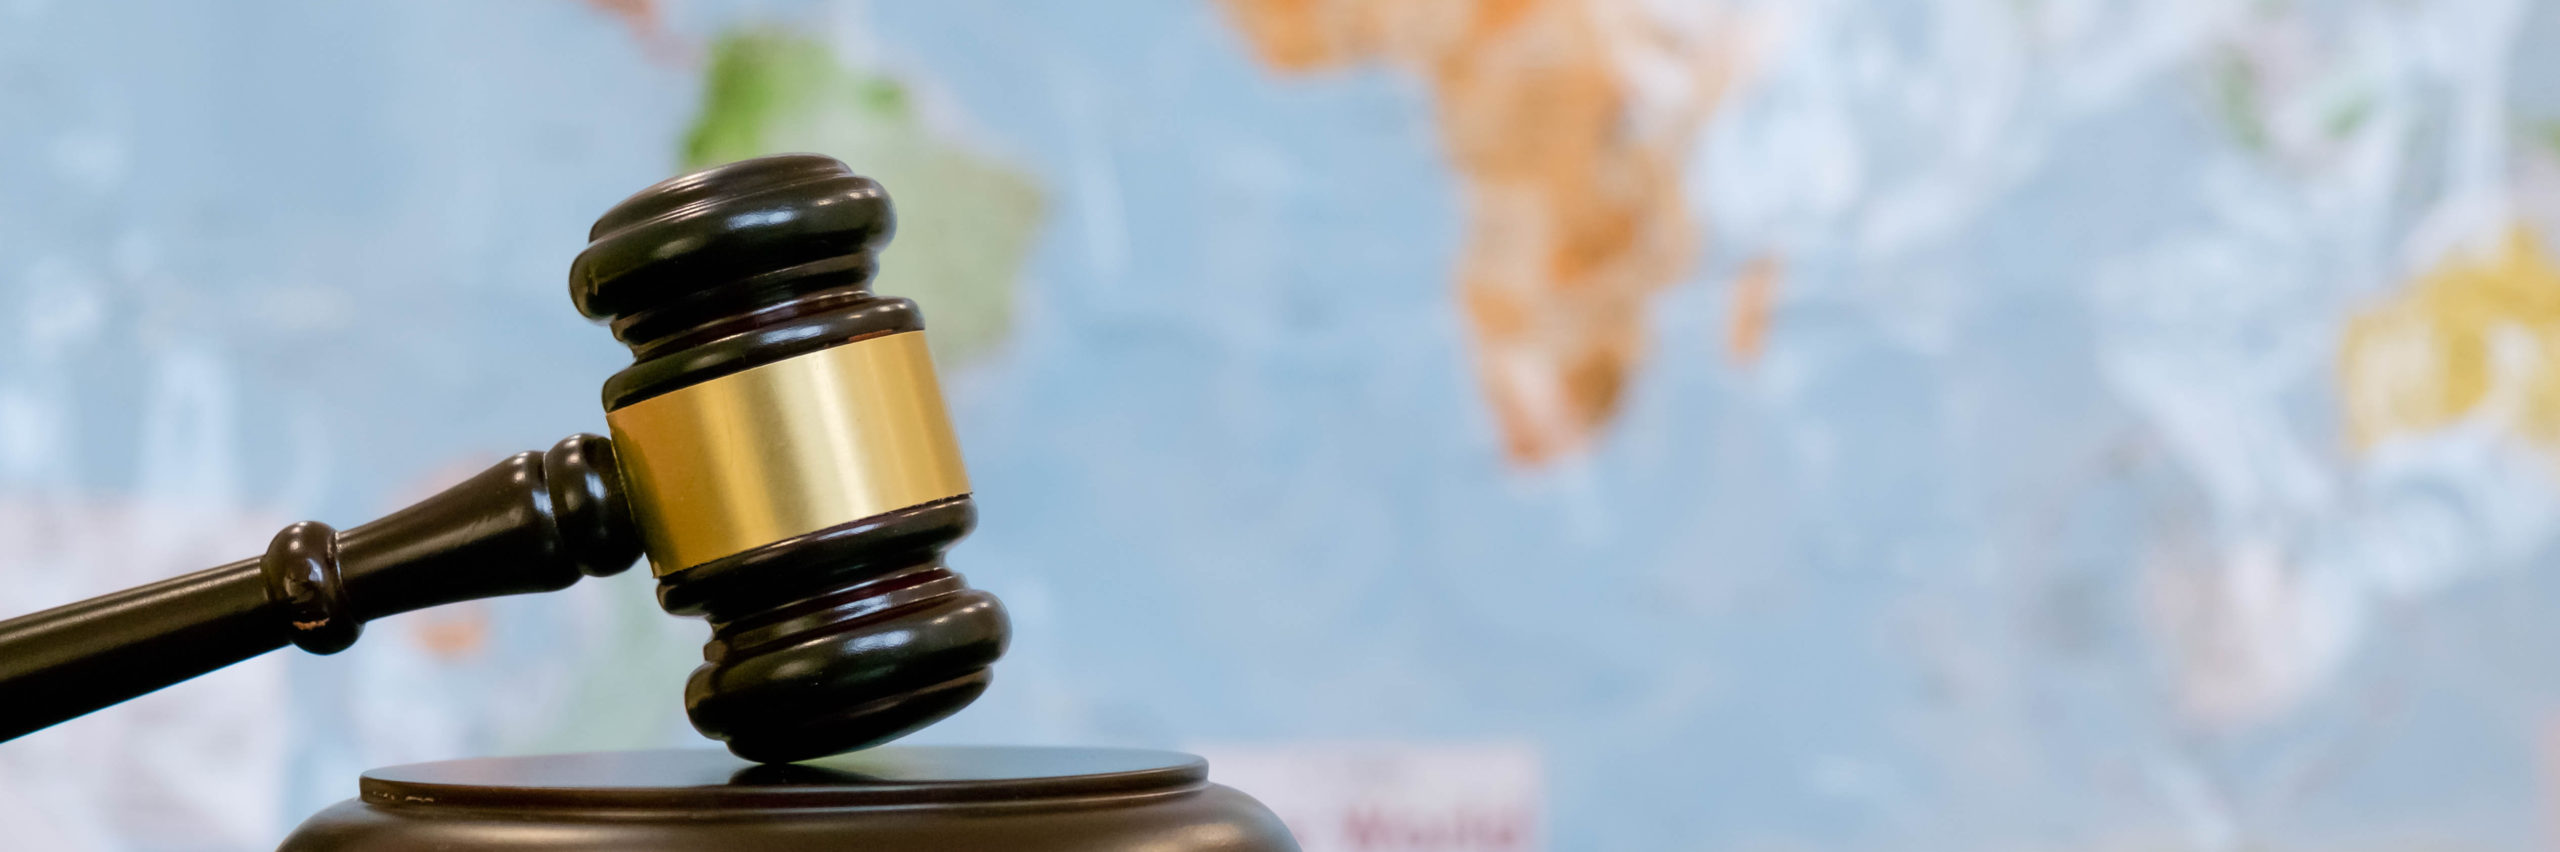 Judge's gavel and over world map. Symbol for jurisdiction. Law concept a wooden judges gavel on table in a courtroom or law enforcement office on blue background. Copy space for text - Image